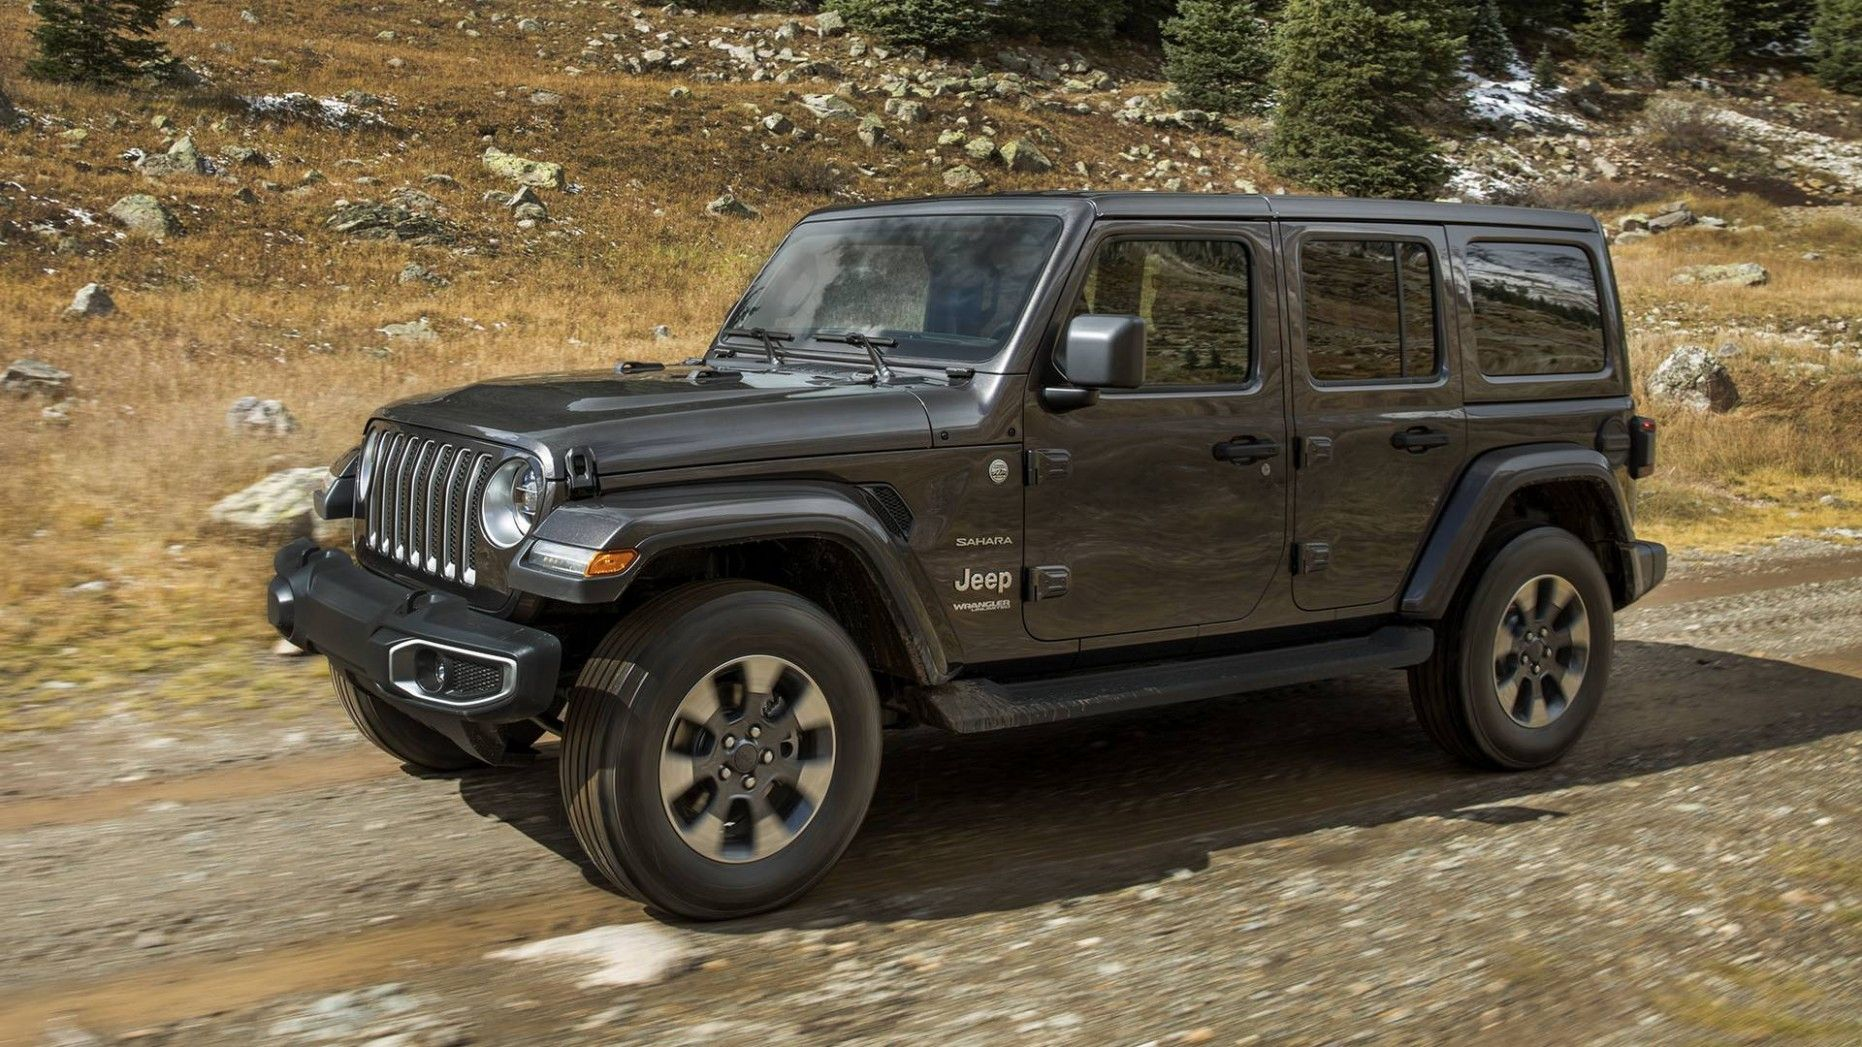 2020 Jeep Wrangler Diesel Specs And Review Jeep Wrangler Jeep Wrangler Diesel Jeep Wrangler Price